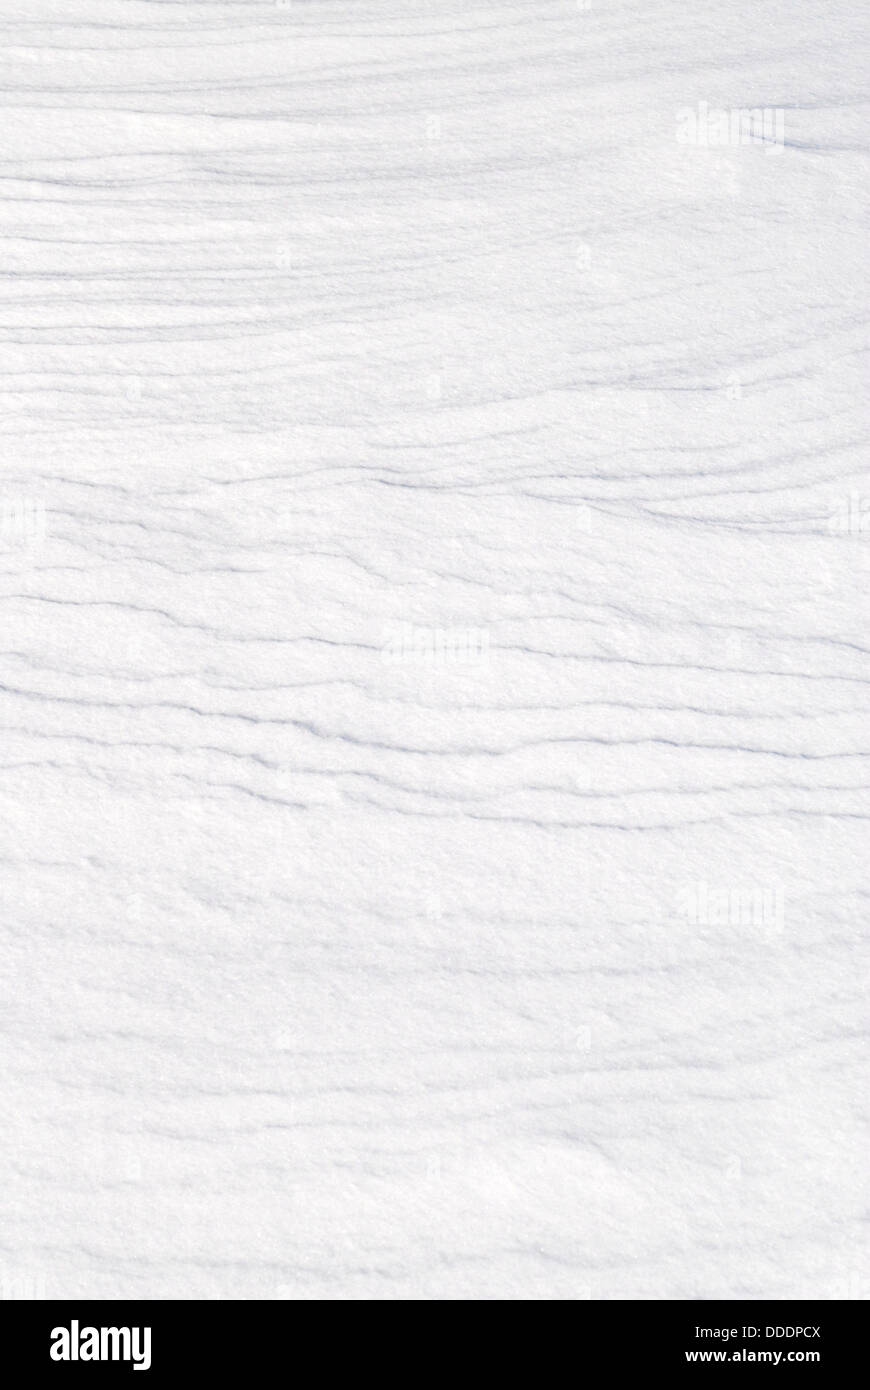 Fresh white snow background texture showing contours and layers. Stock Photo